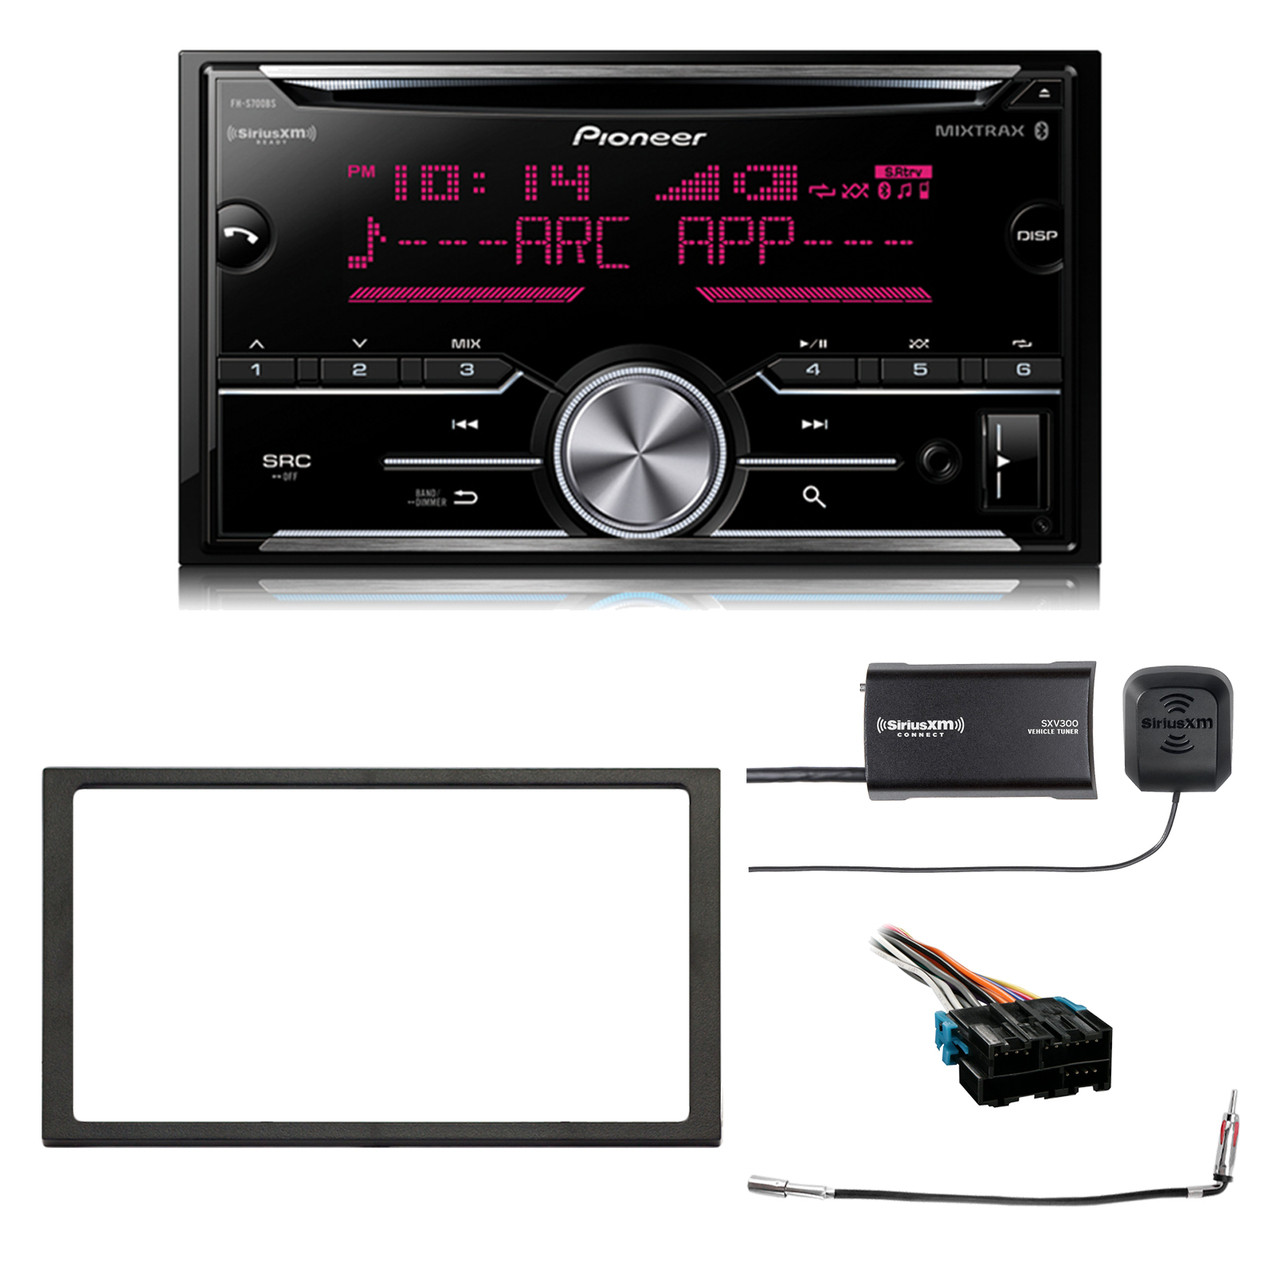 hight resolution of pioneer double din cd mixtrax bluetooth siriusxm ready receiver enrock 2 din install dash kit metra radio wiring harness antenna adapter